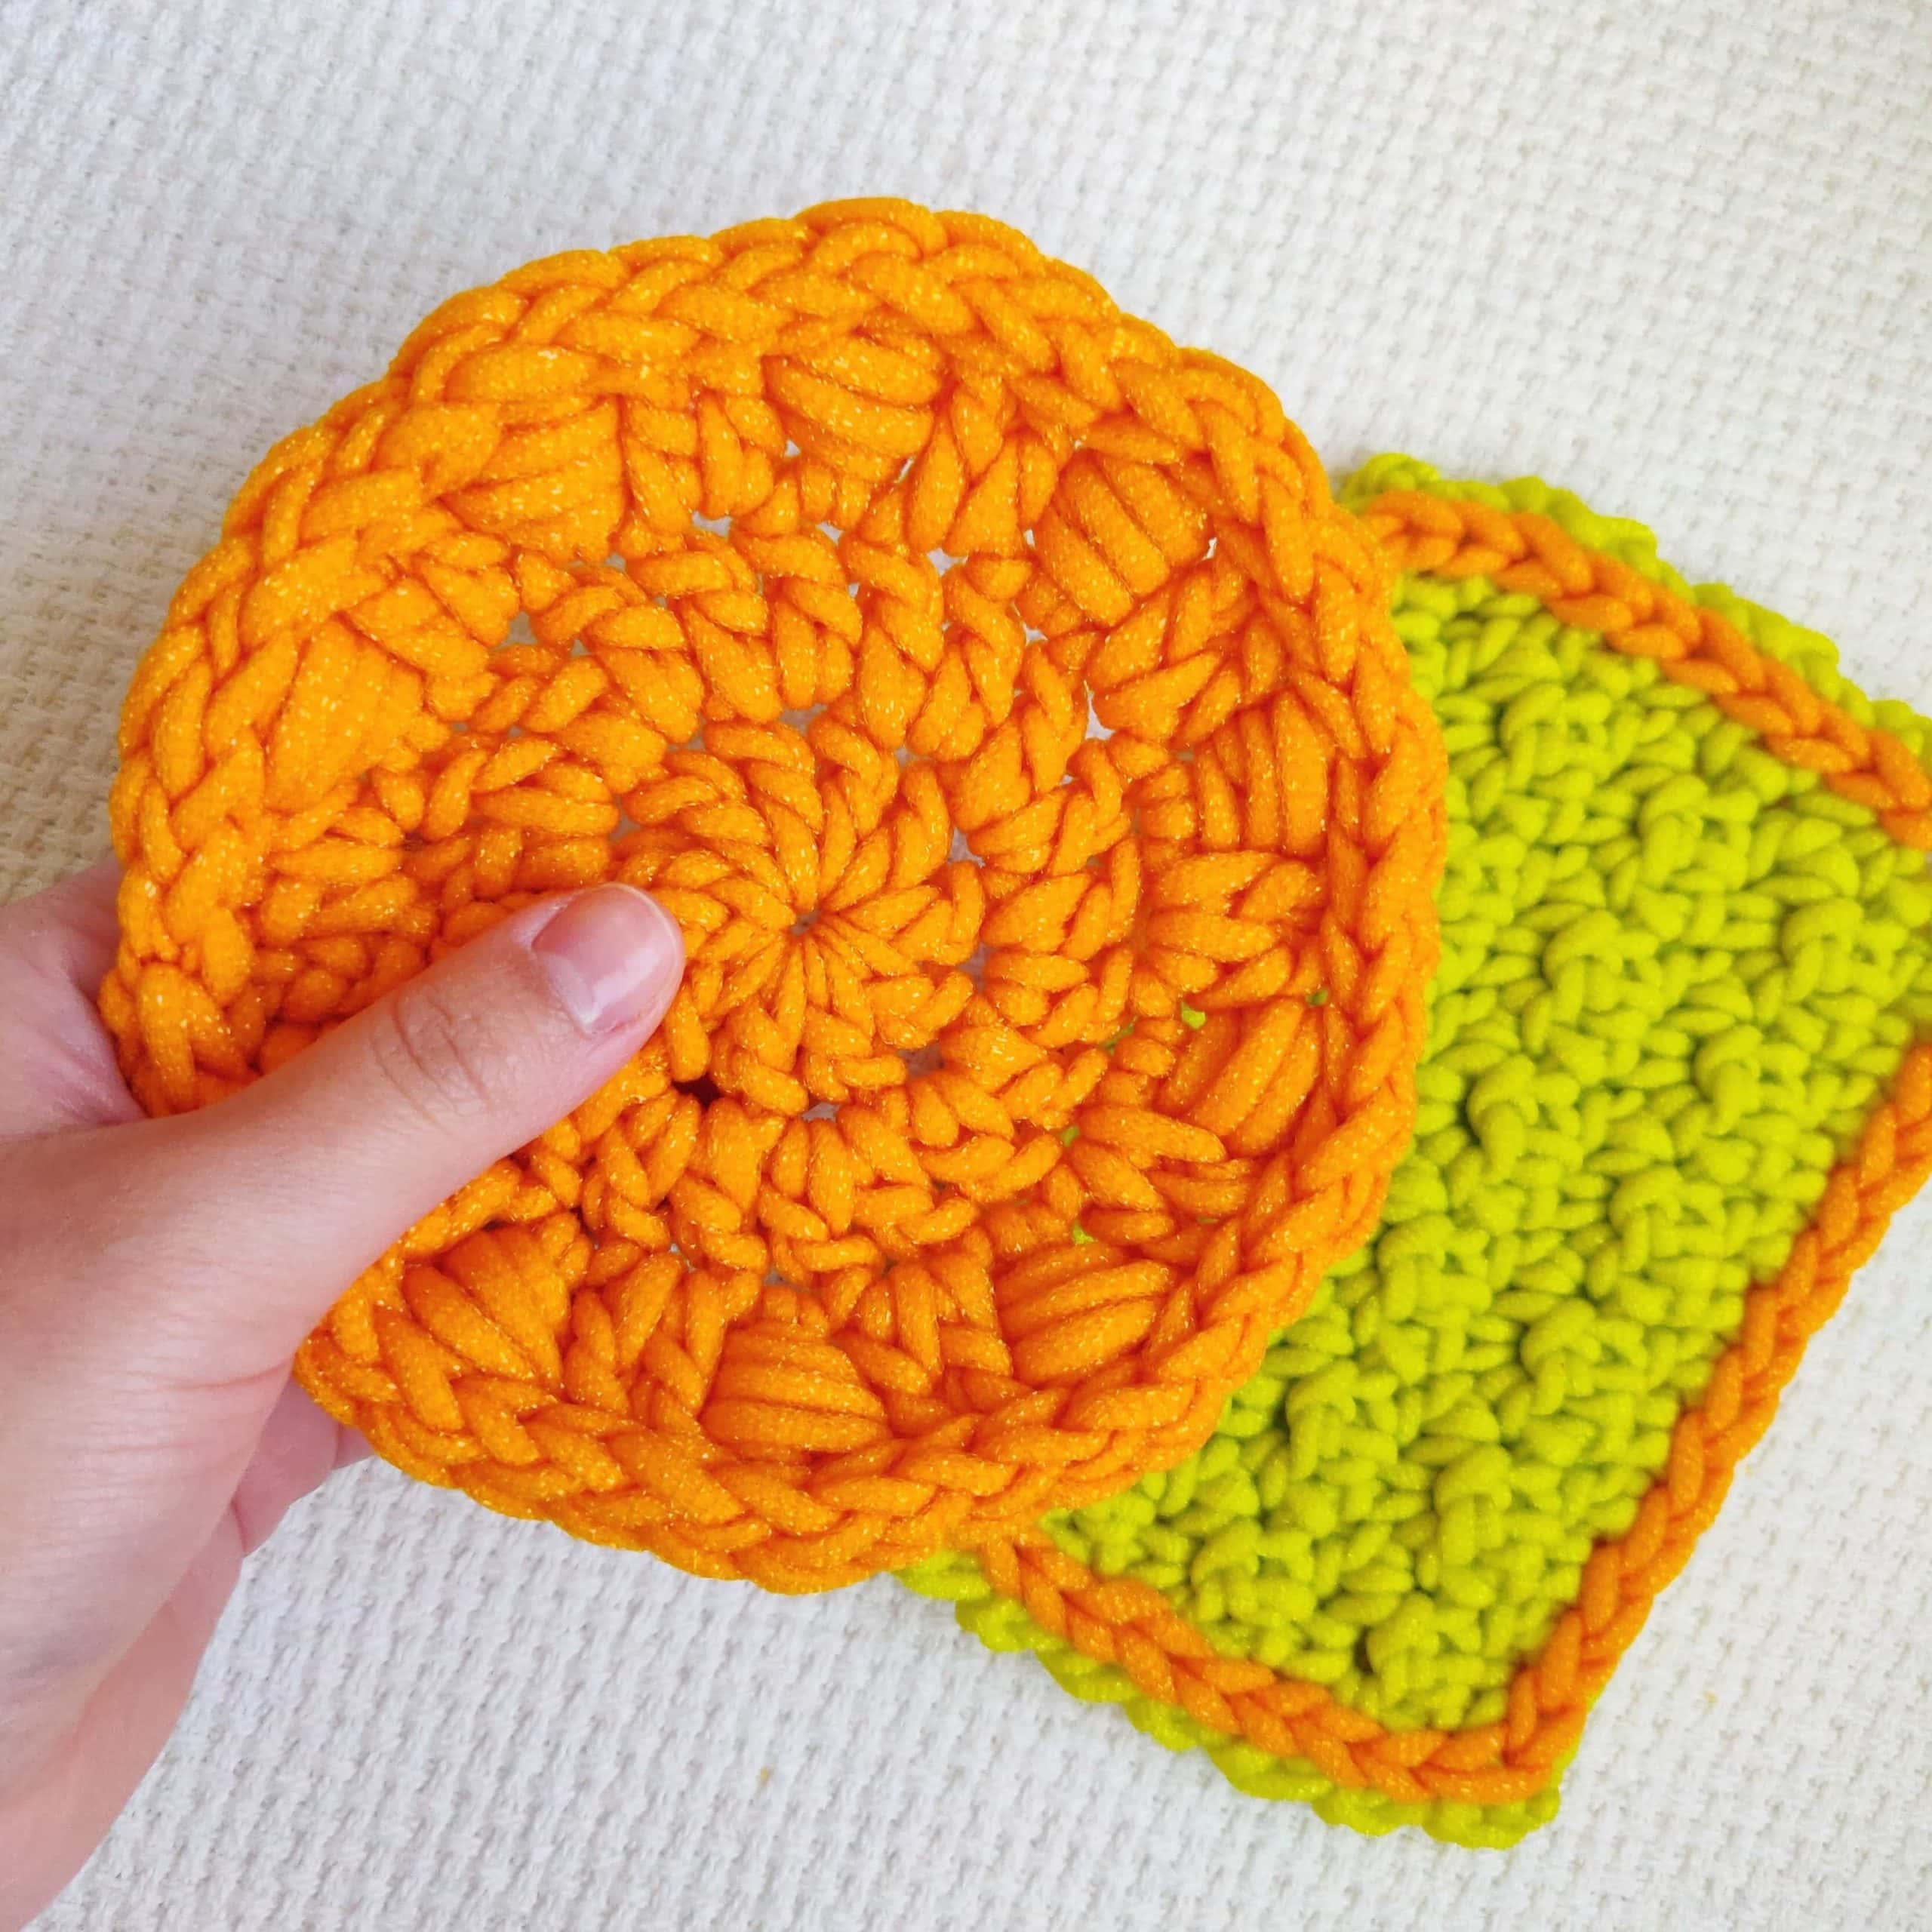 An orange crochet dish scrubby with double crochet and wrap around stitches.